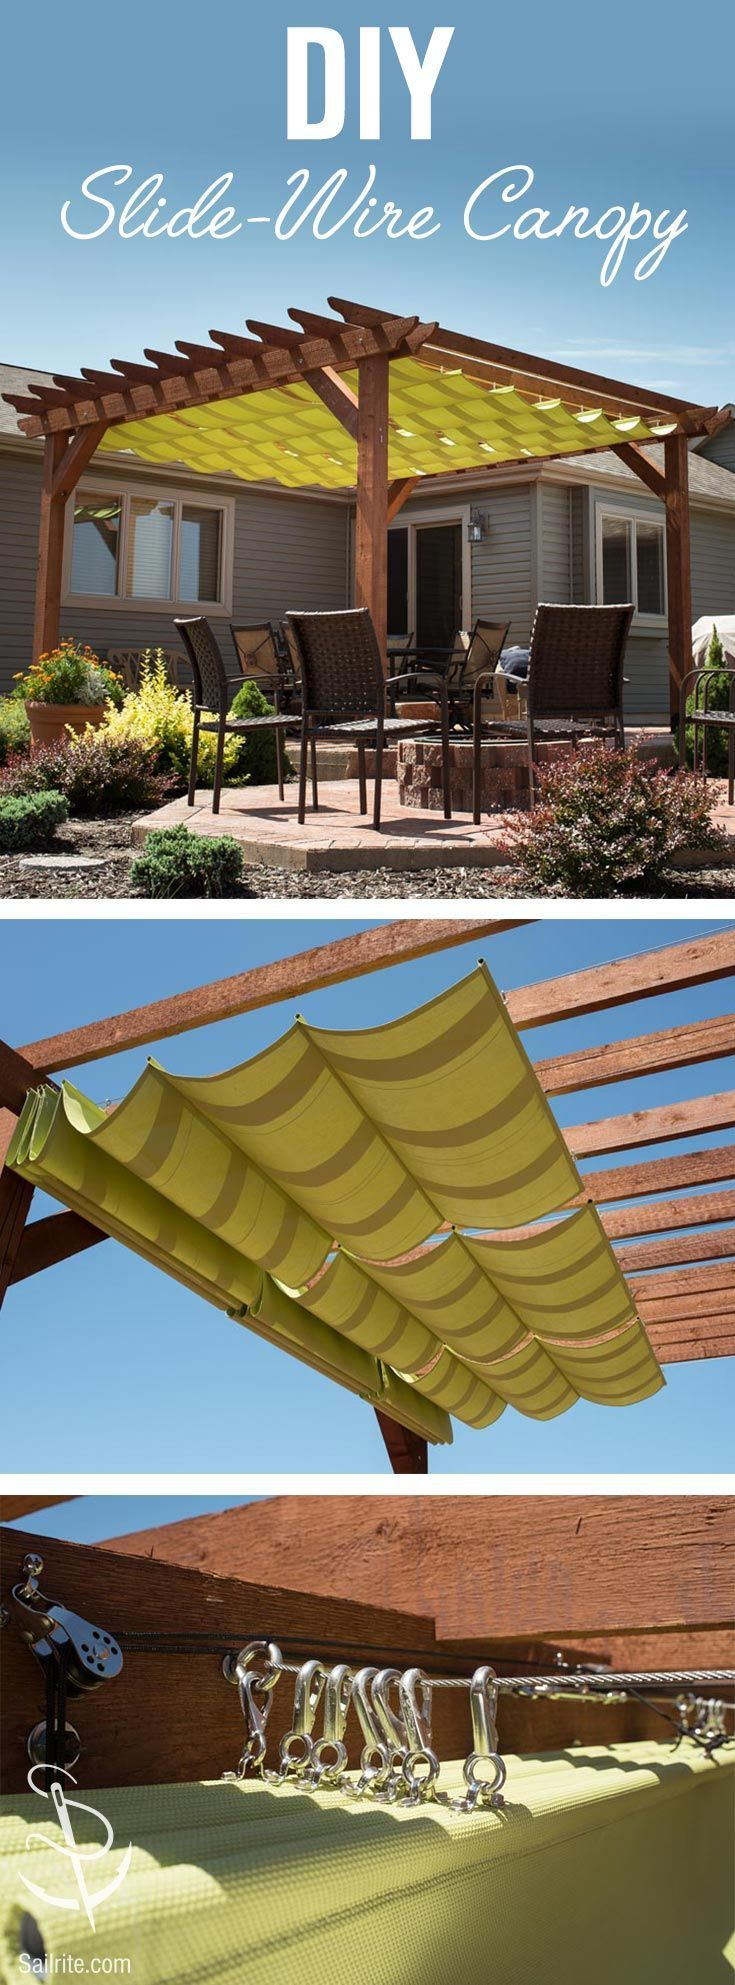 Learn How To Make A Slide Wire Canopy With Free How To Video Instructions